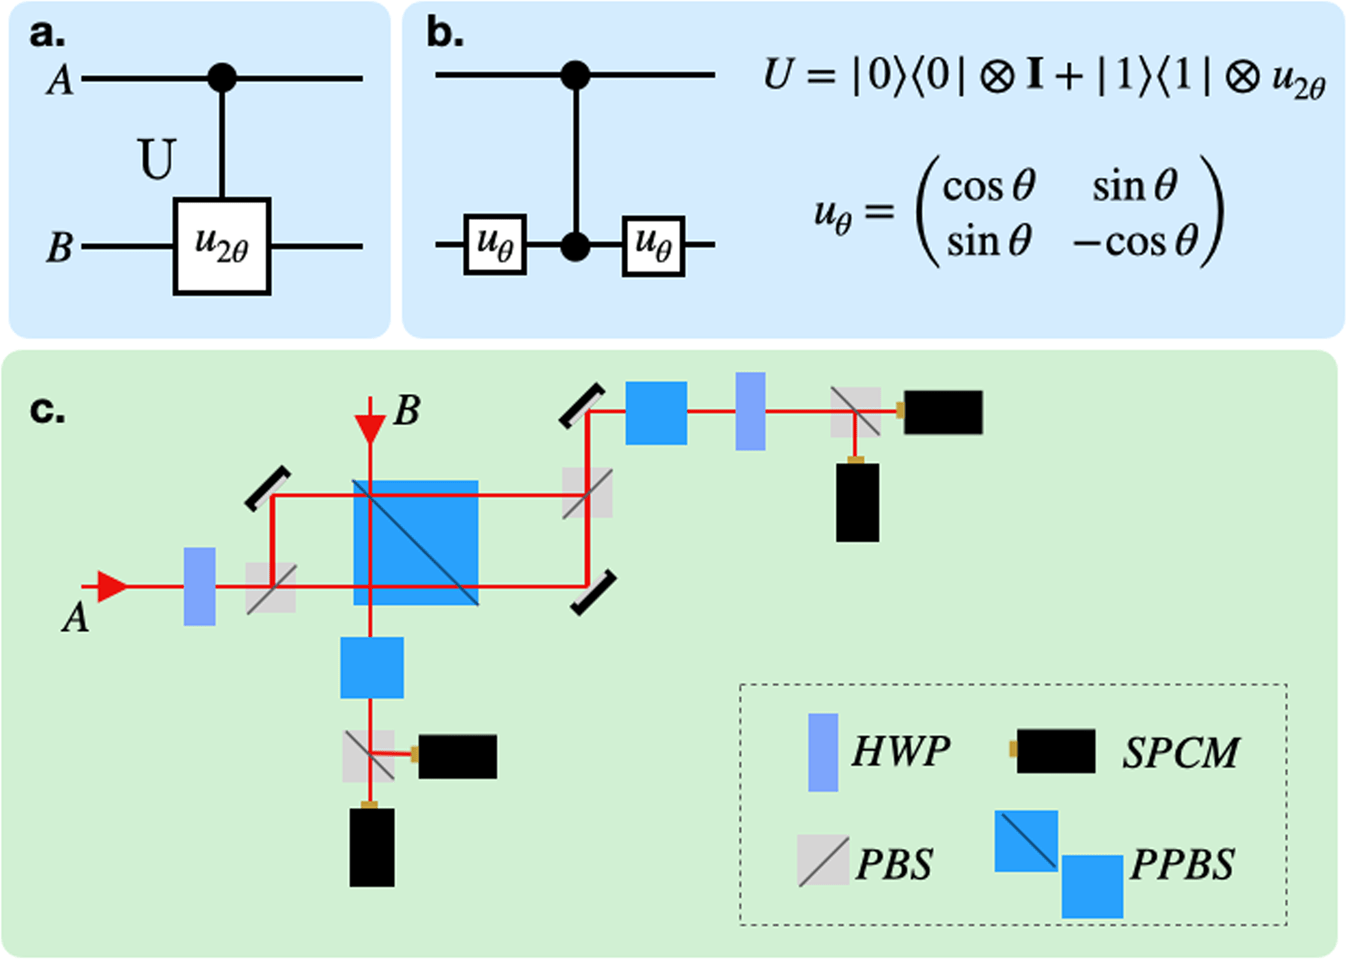 Experimental characterization of the energetics of quantum logic gates